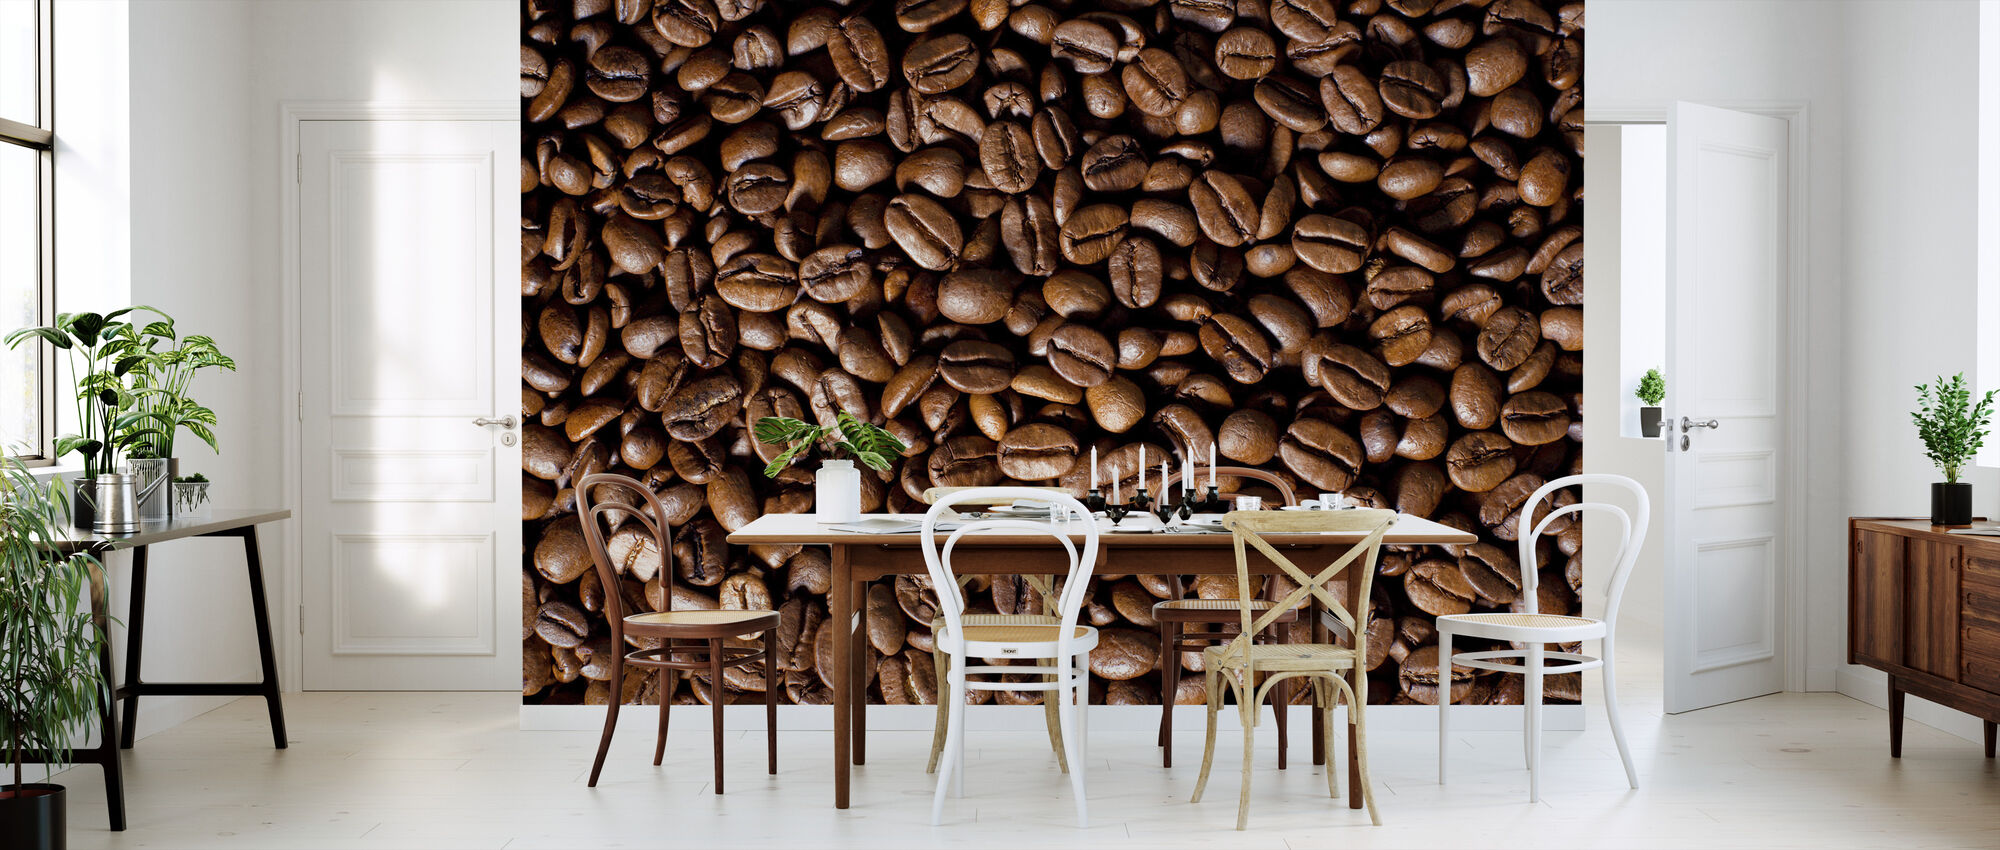 Coffee Beans - Wallpaper - Kitchen